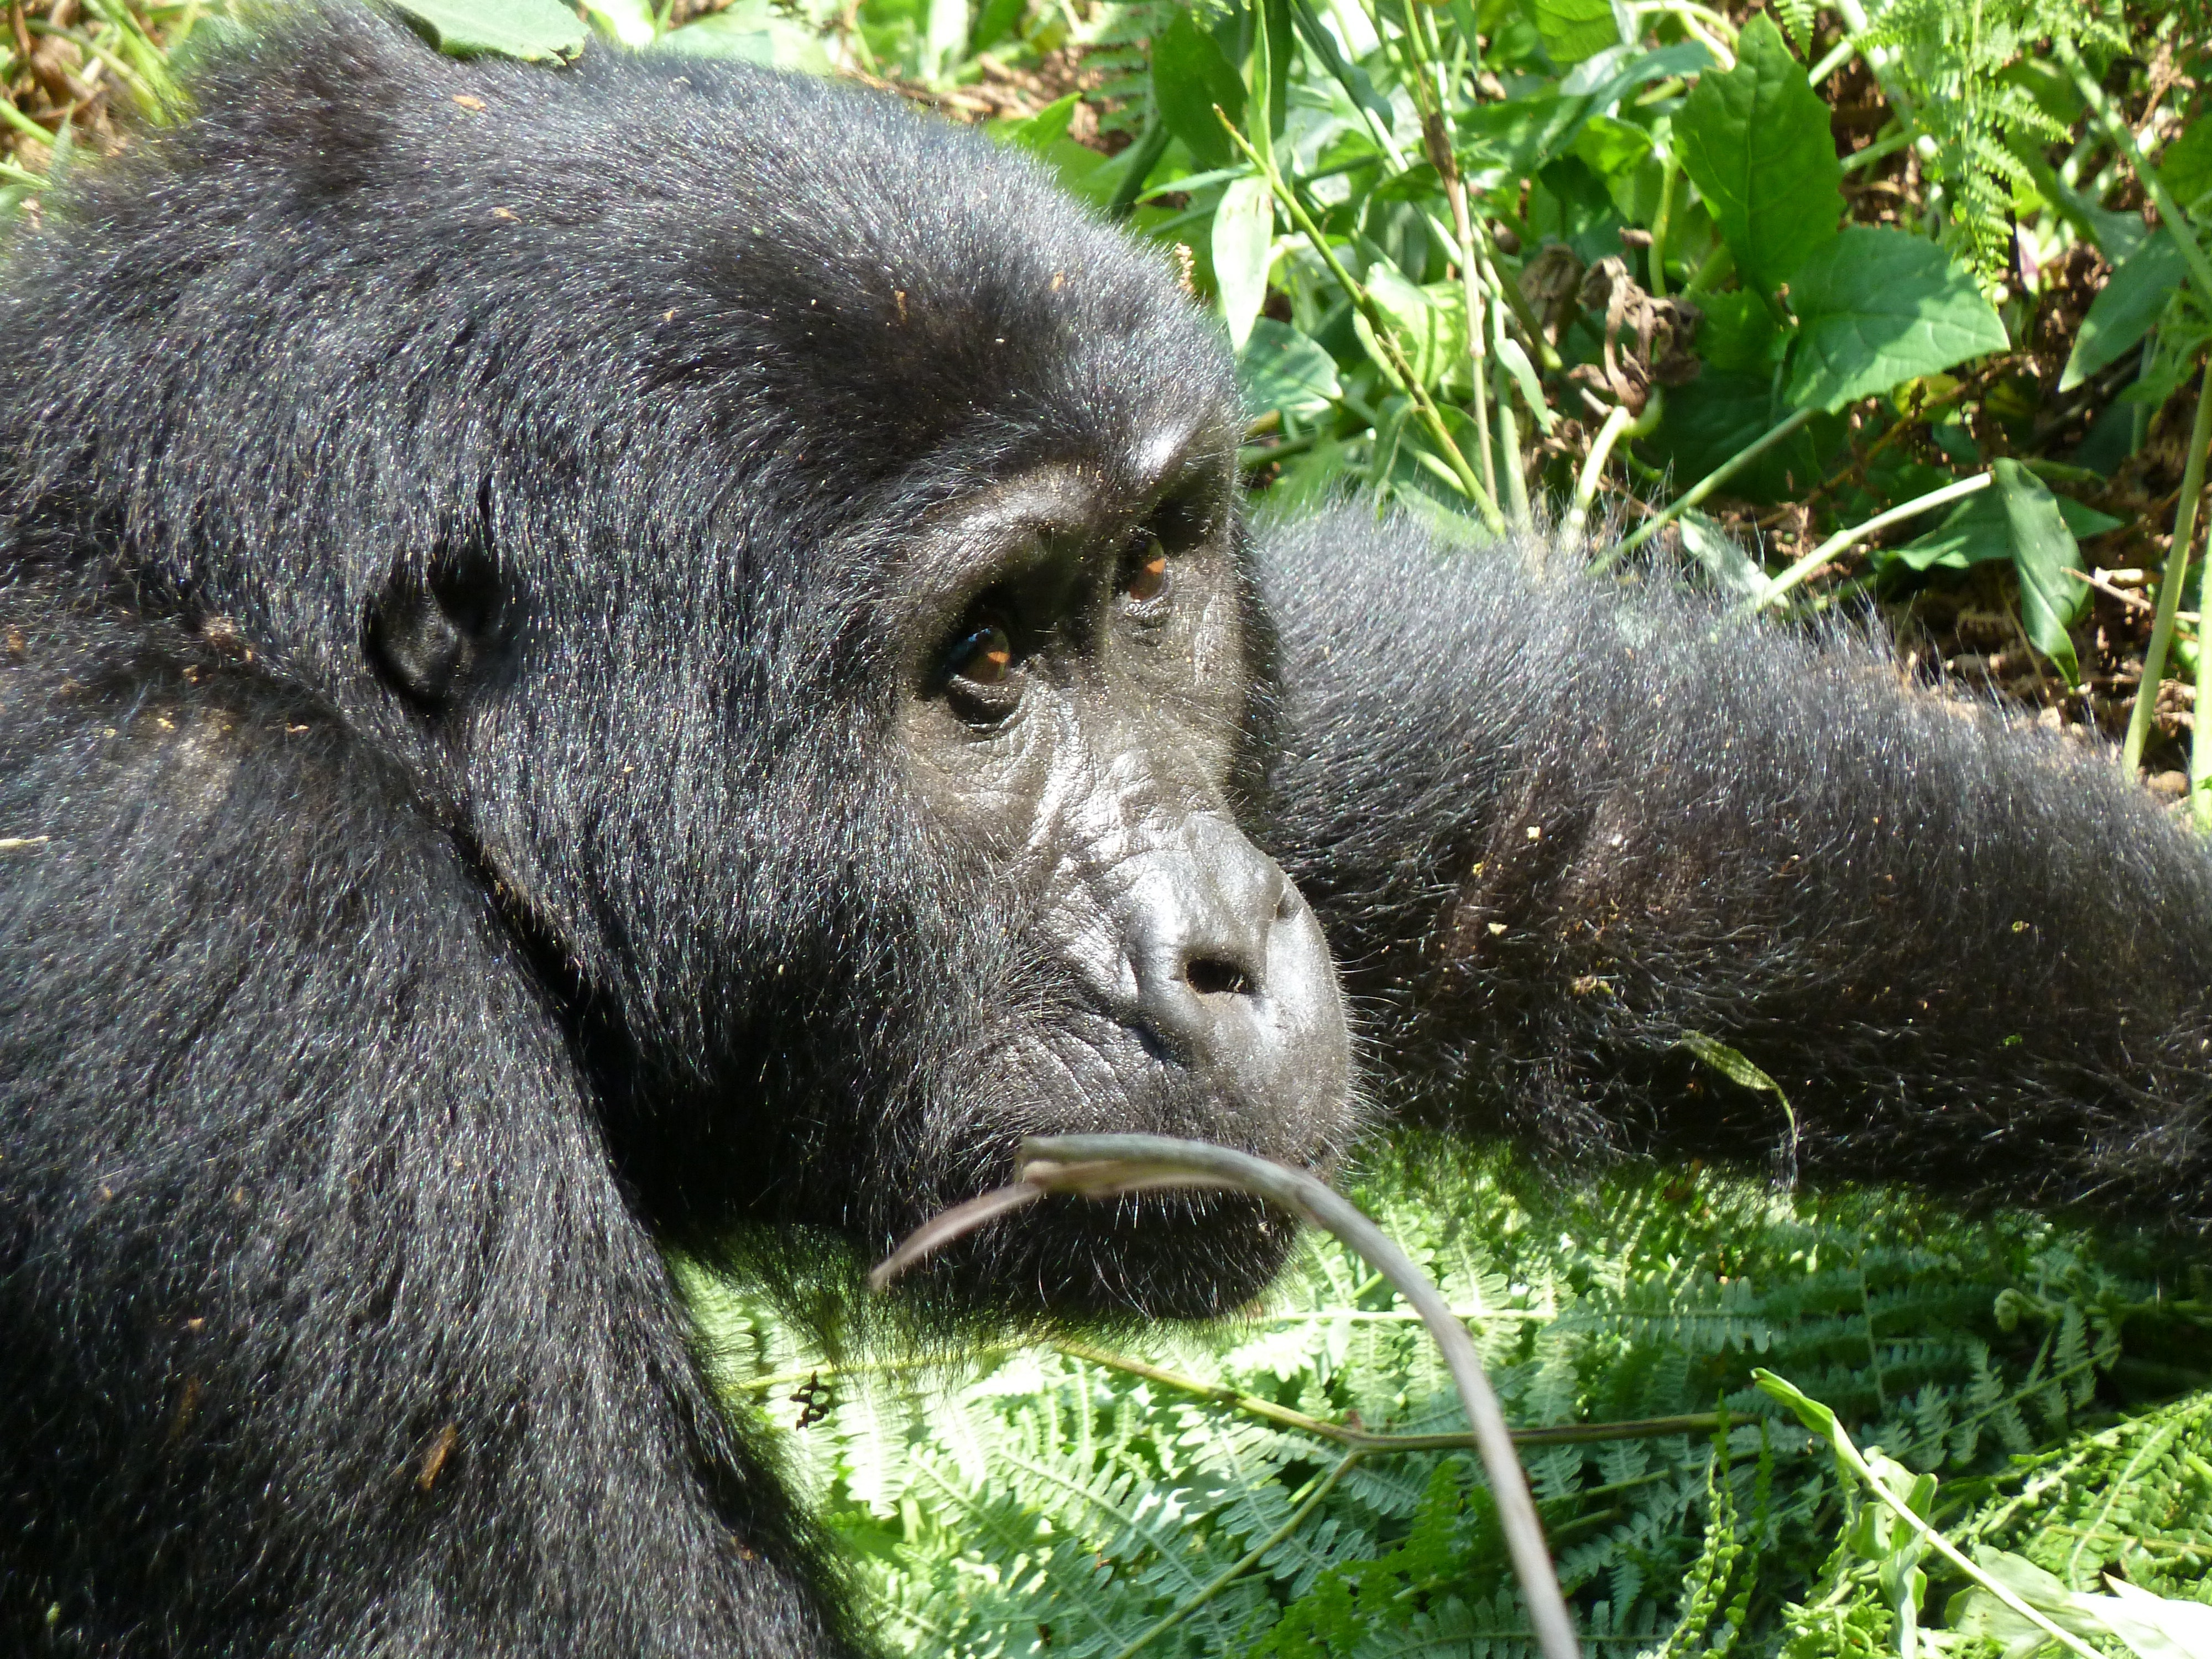 Silverbacks and greenbacks: the catch-22 at the heart of gorilla conservation